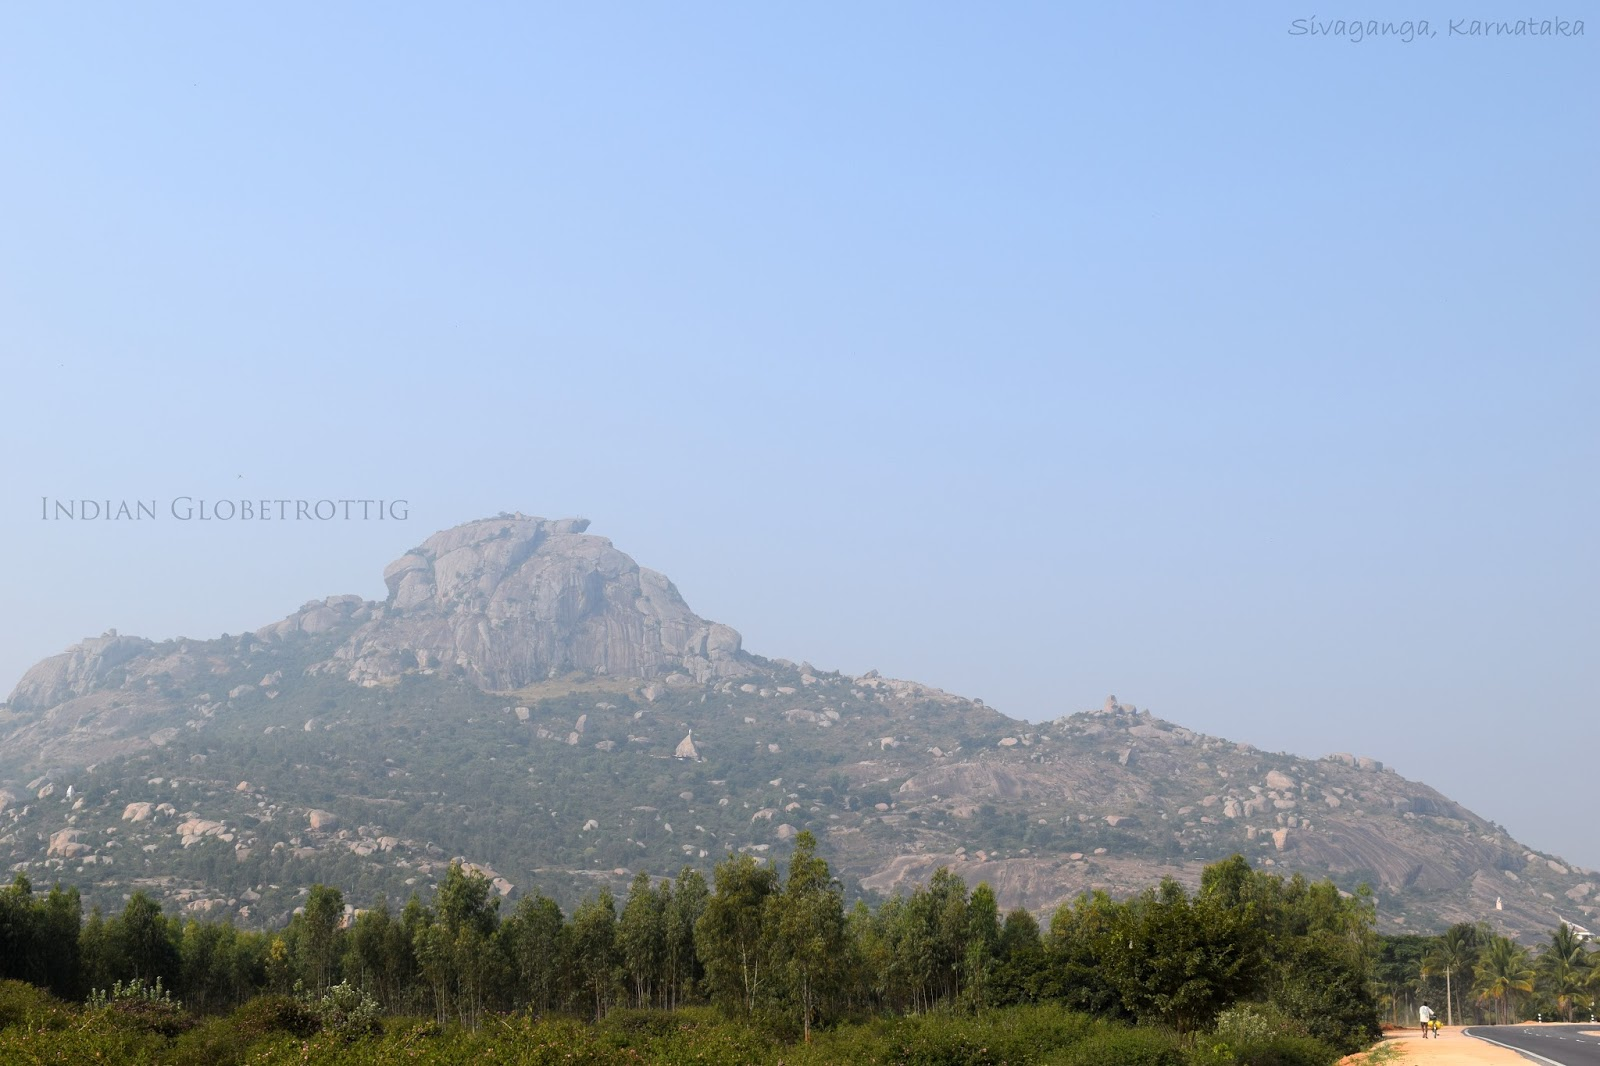 Long view of Shivaganga Hill